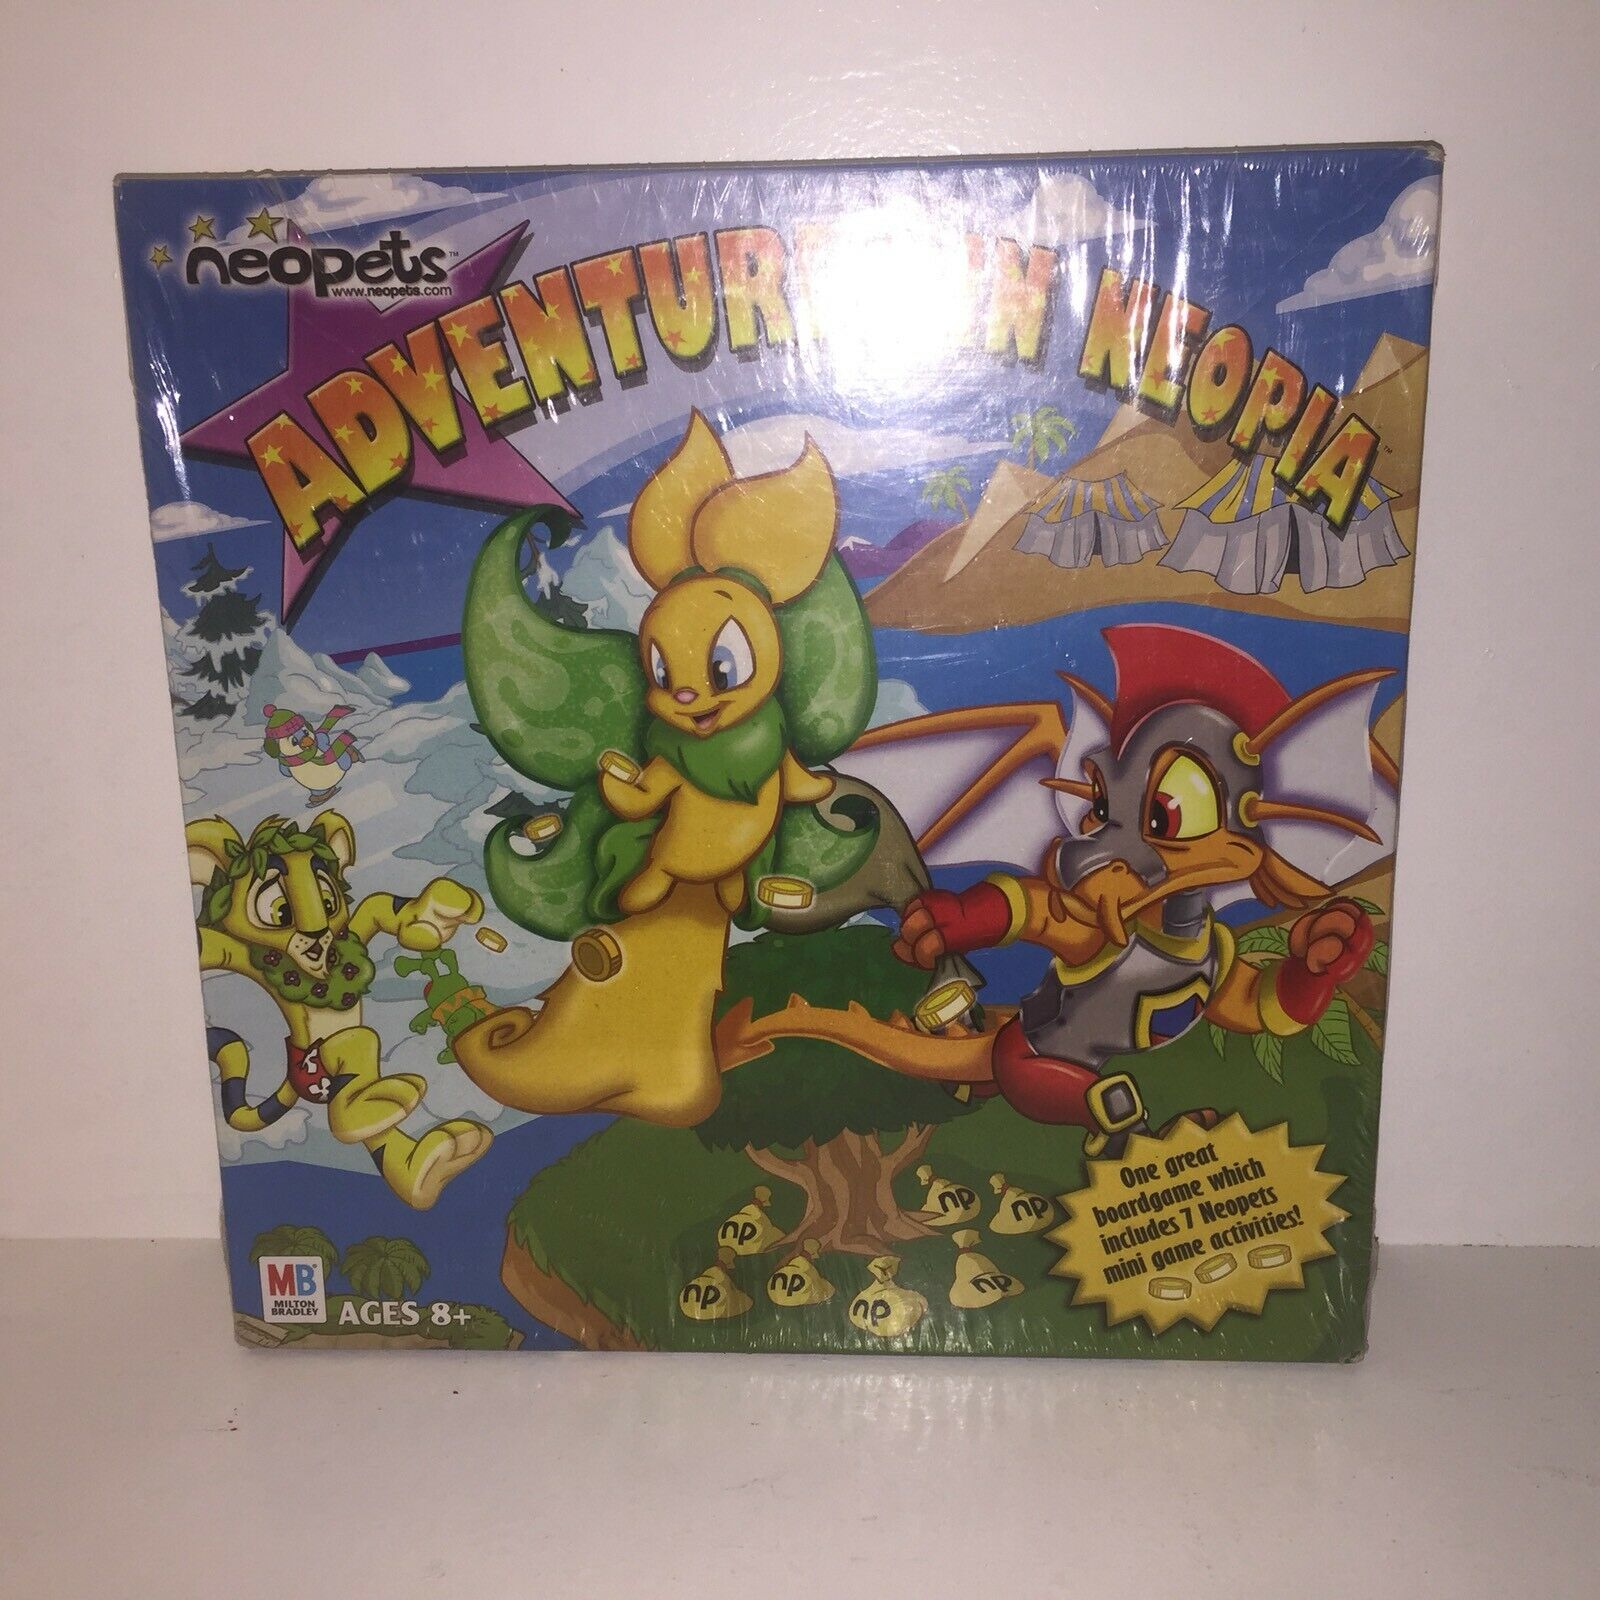 RARE Hasbro 2003 NEOPETS Adventures in Neopia Board Game NEW Sealed made in USA